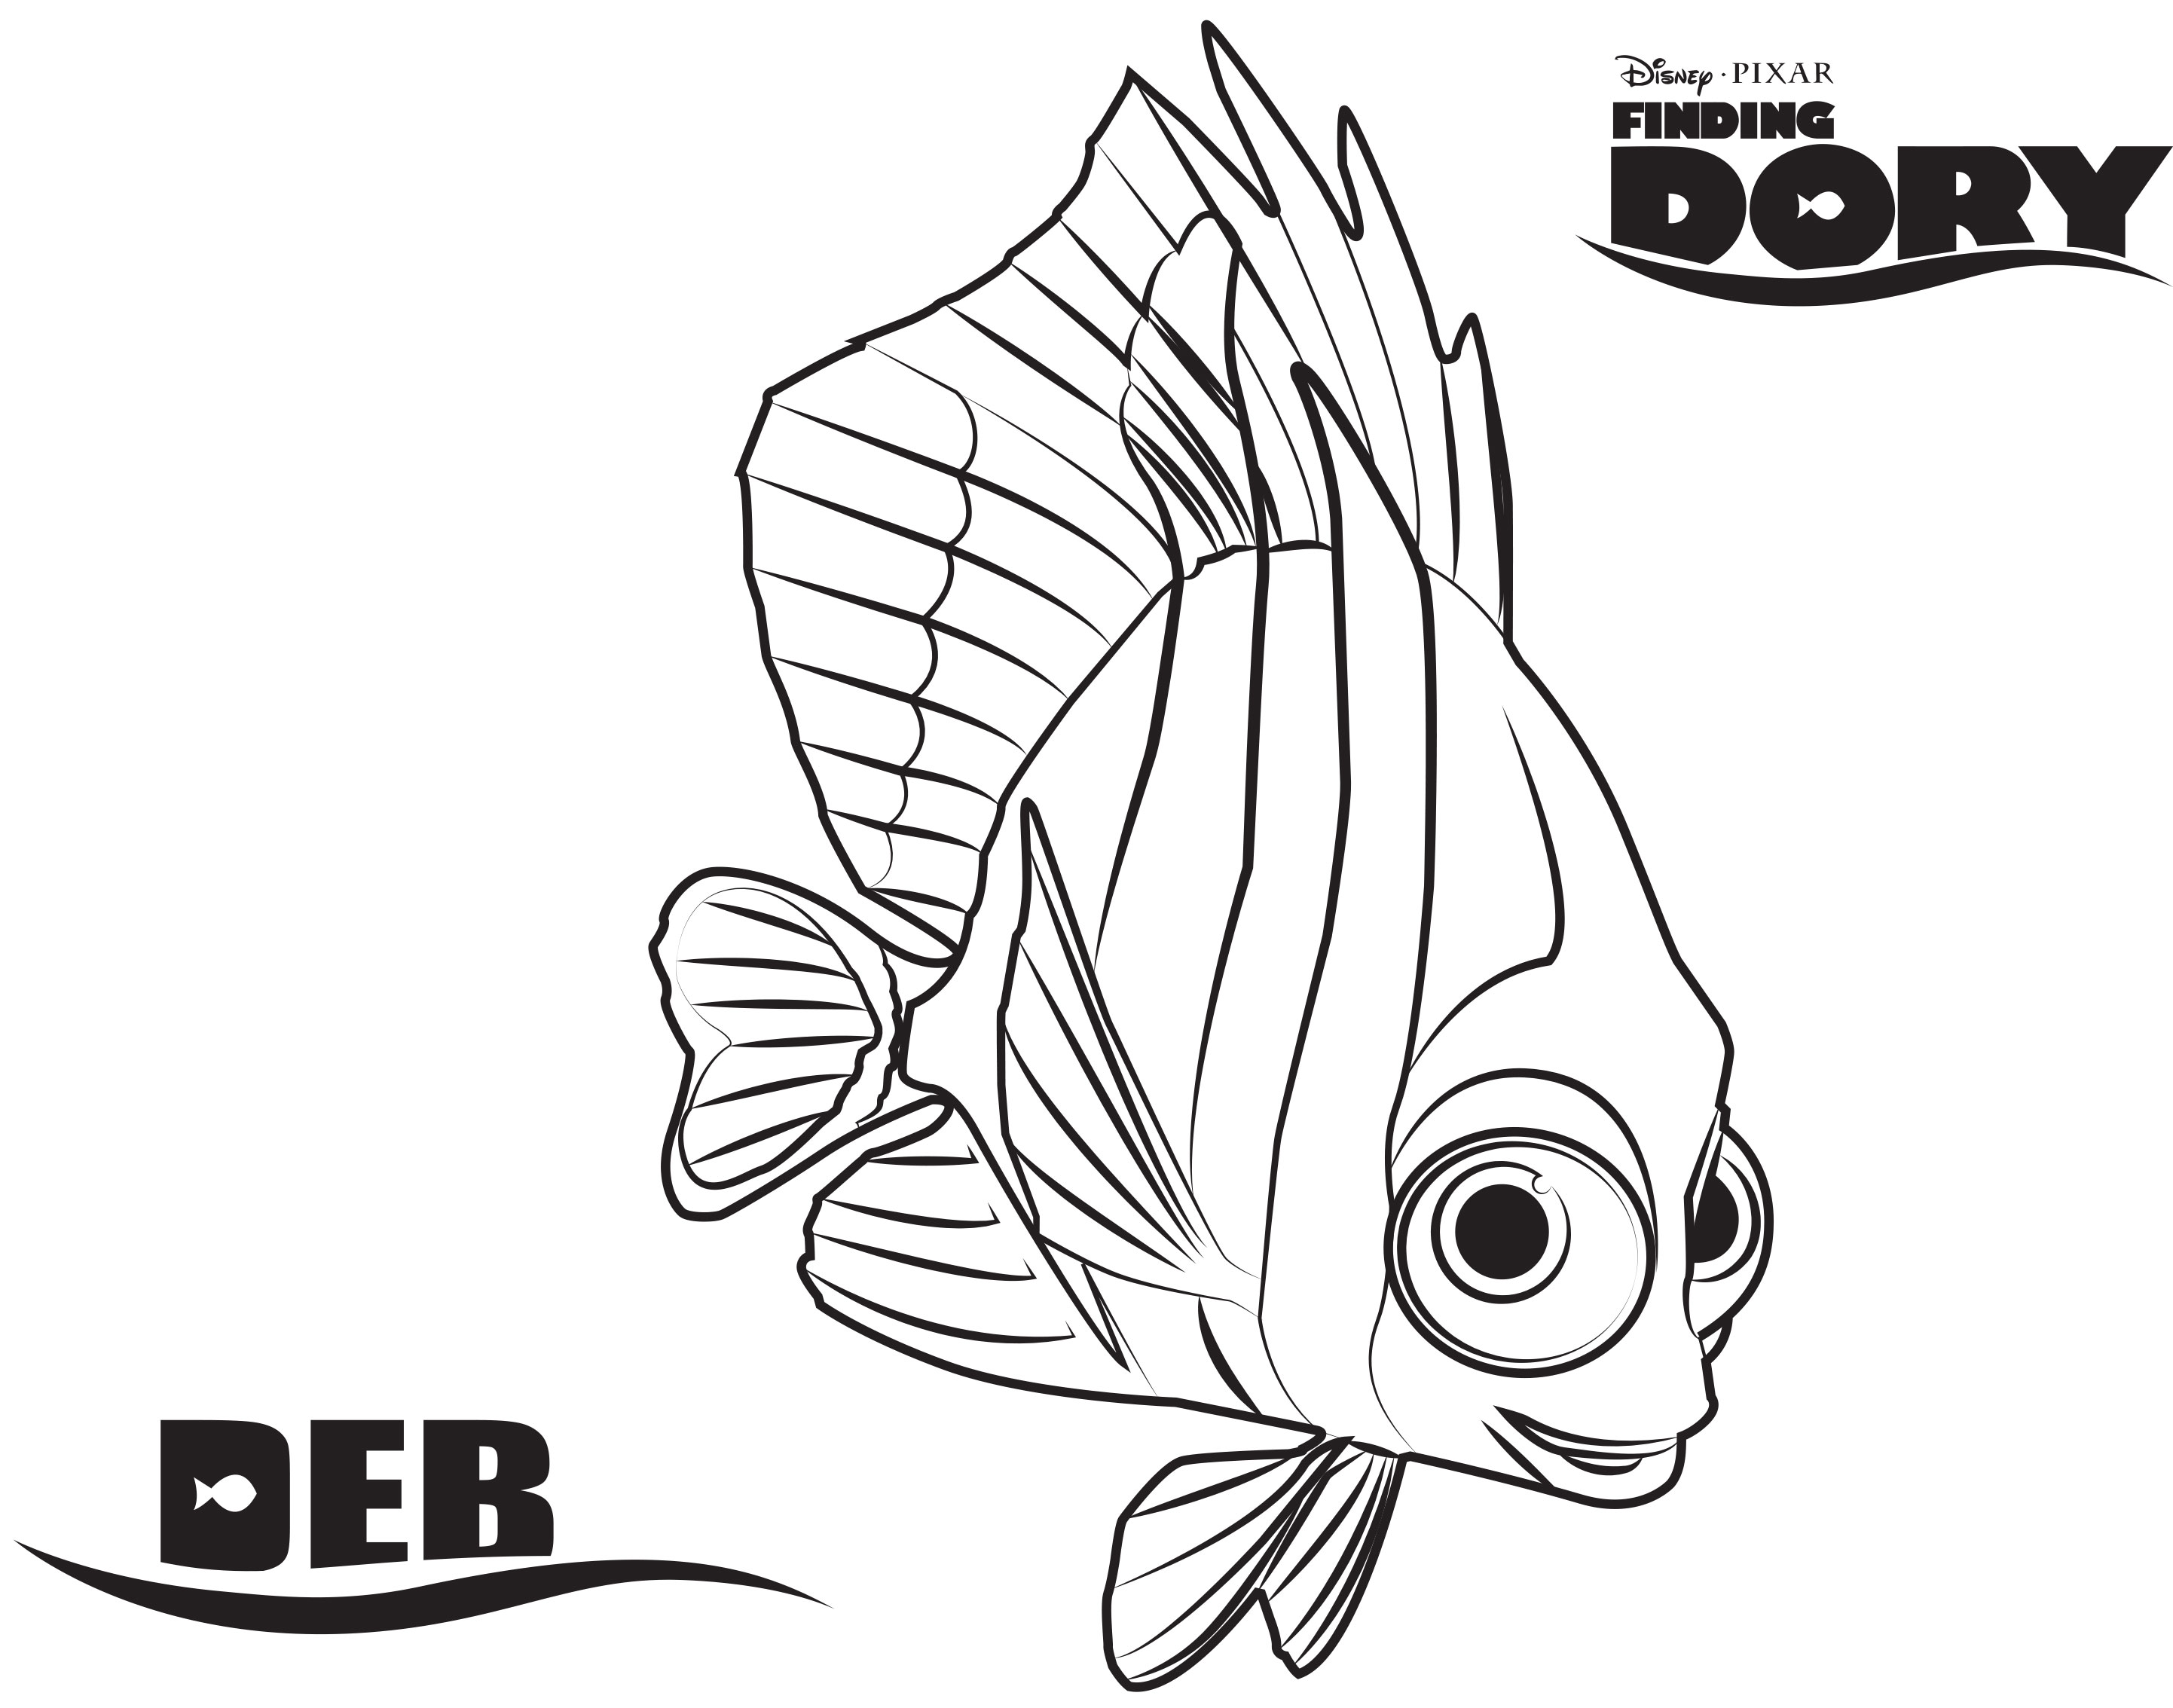 Dory finding nemo coloring pages deb in finding dory and nemo whale